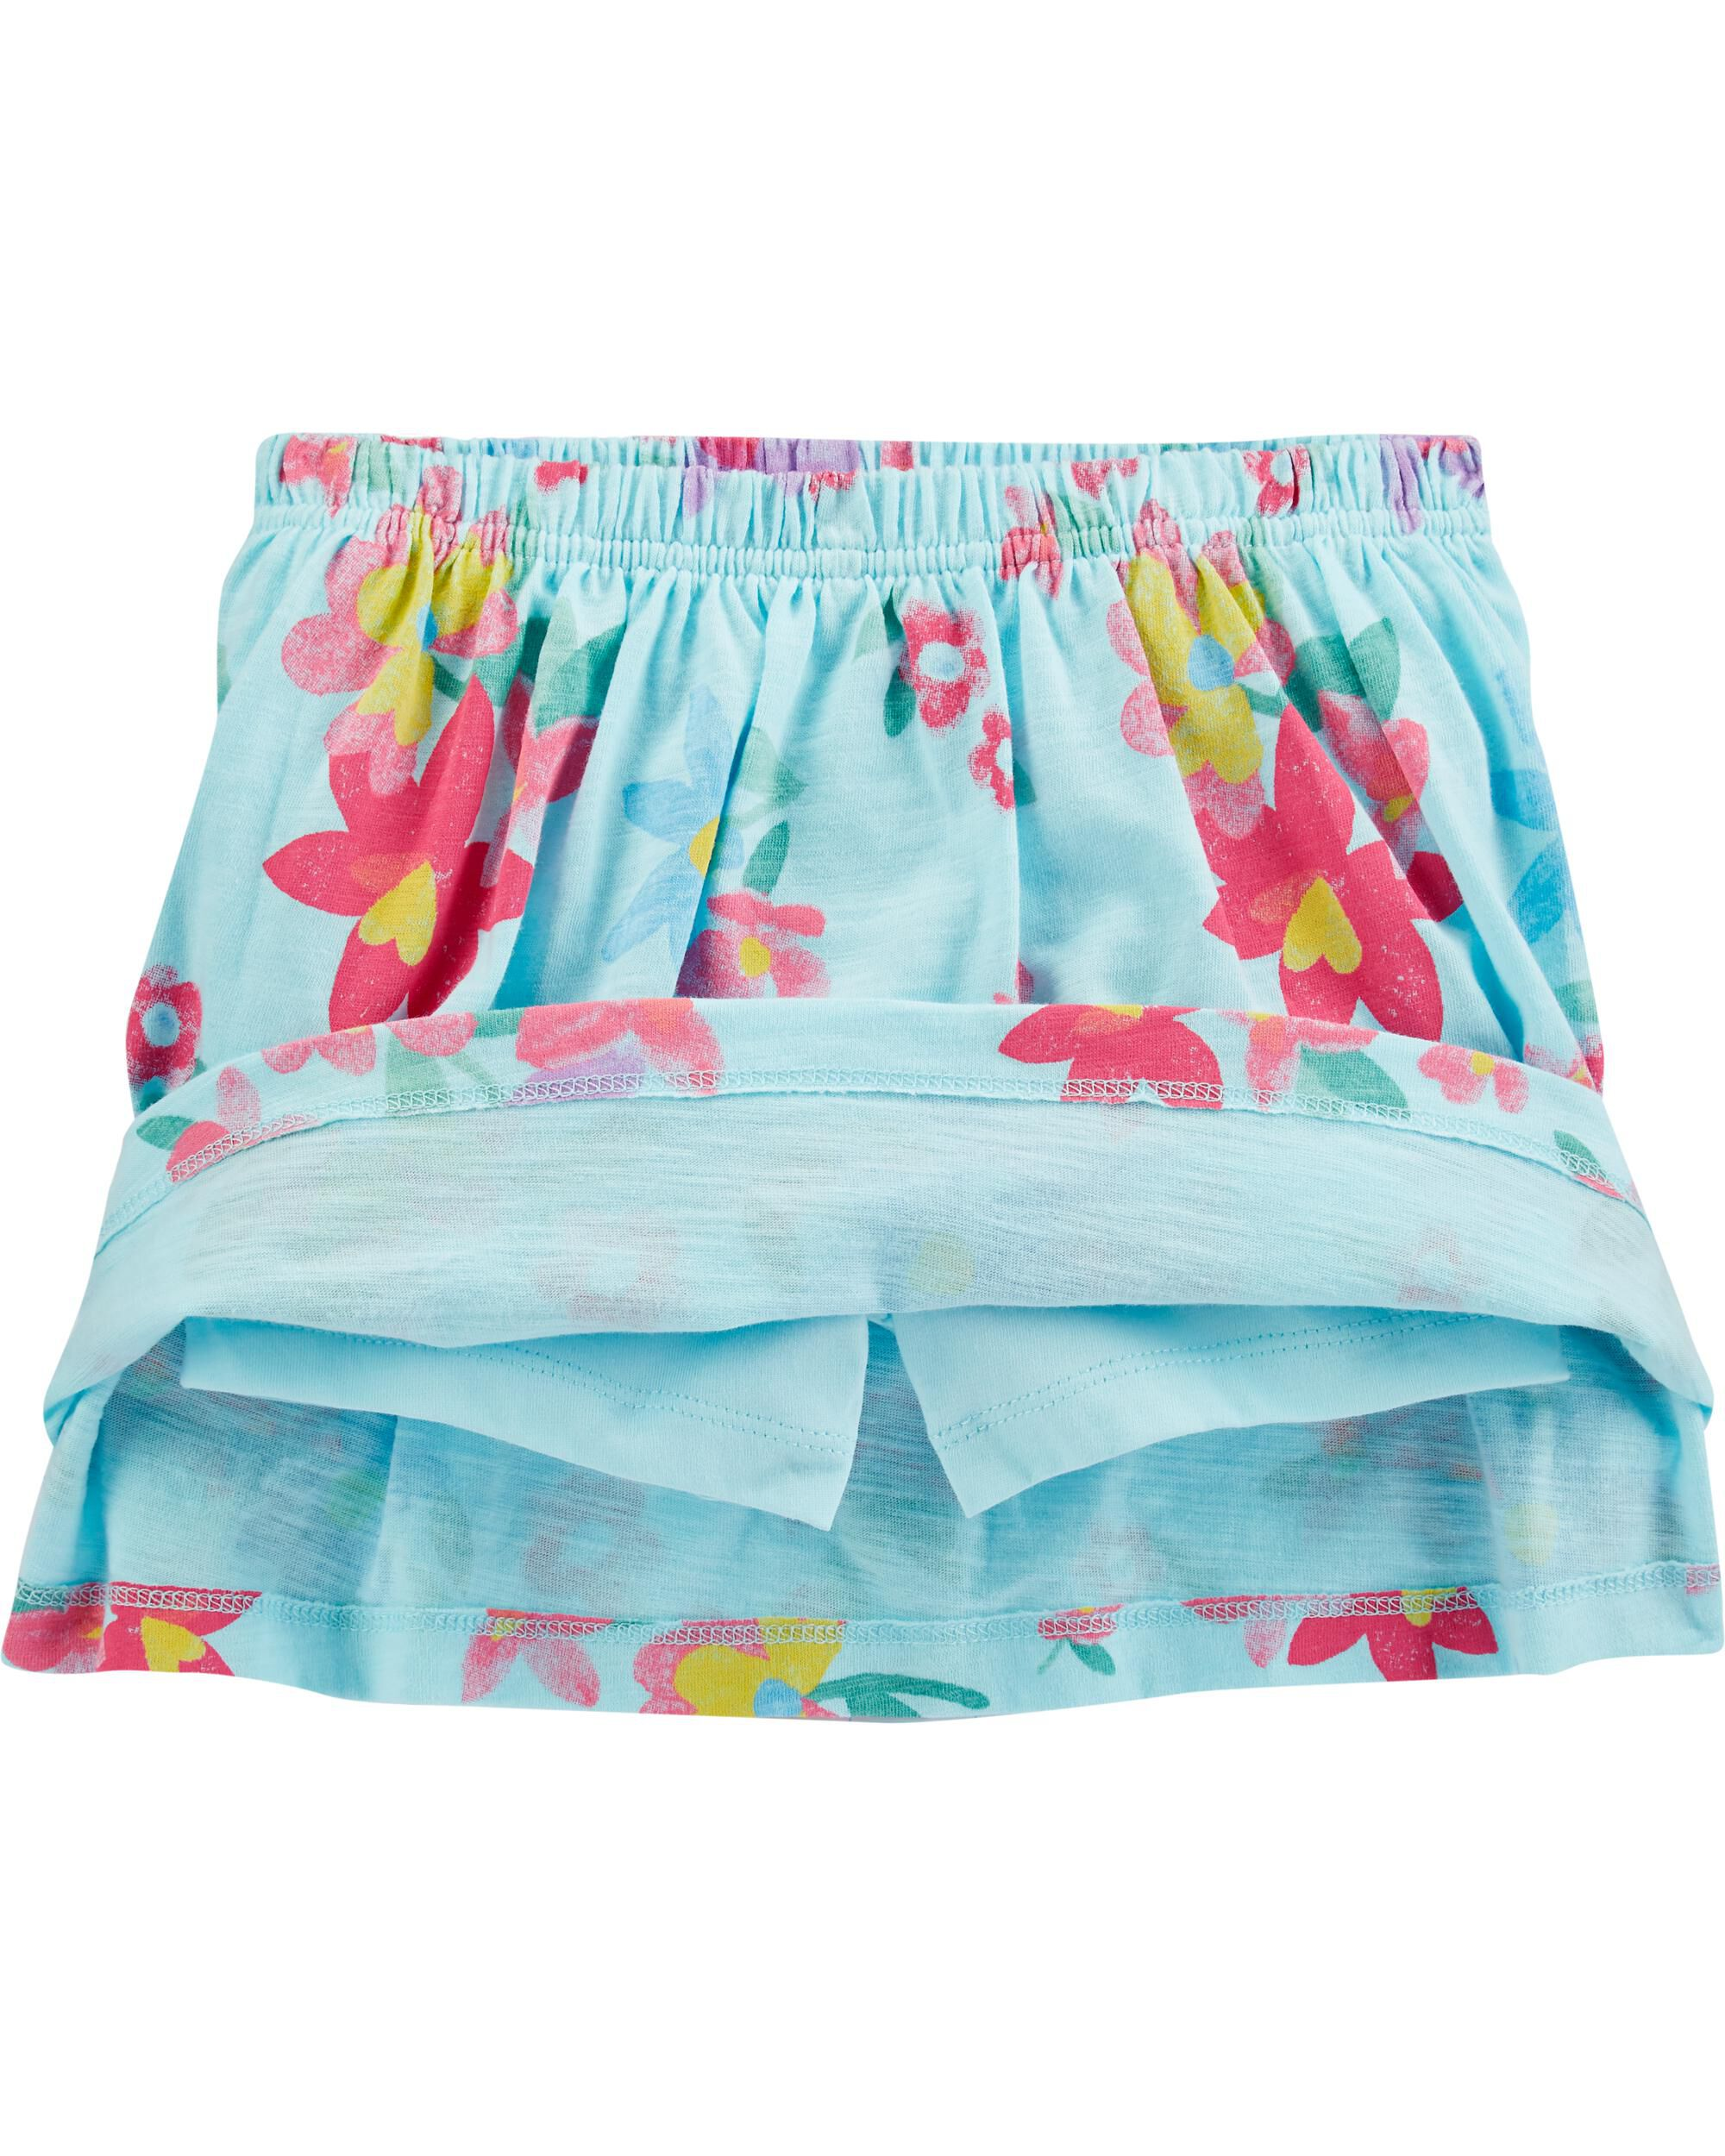 NWT CARTER/'S GIRL SIZE 4 SKORT 2 PIECE SKIRT AND SHORTS BRAND NEW TEAL GREEN